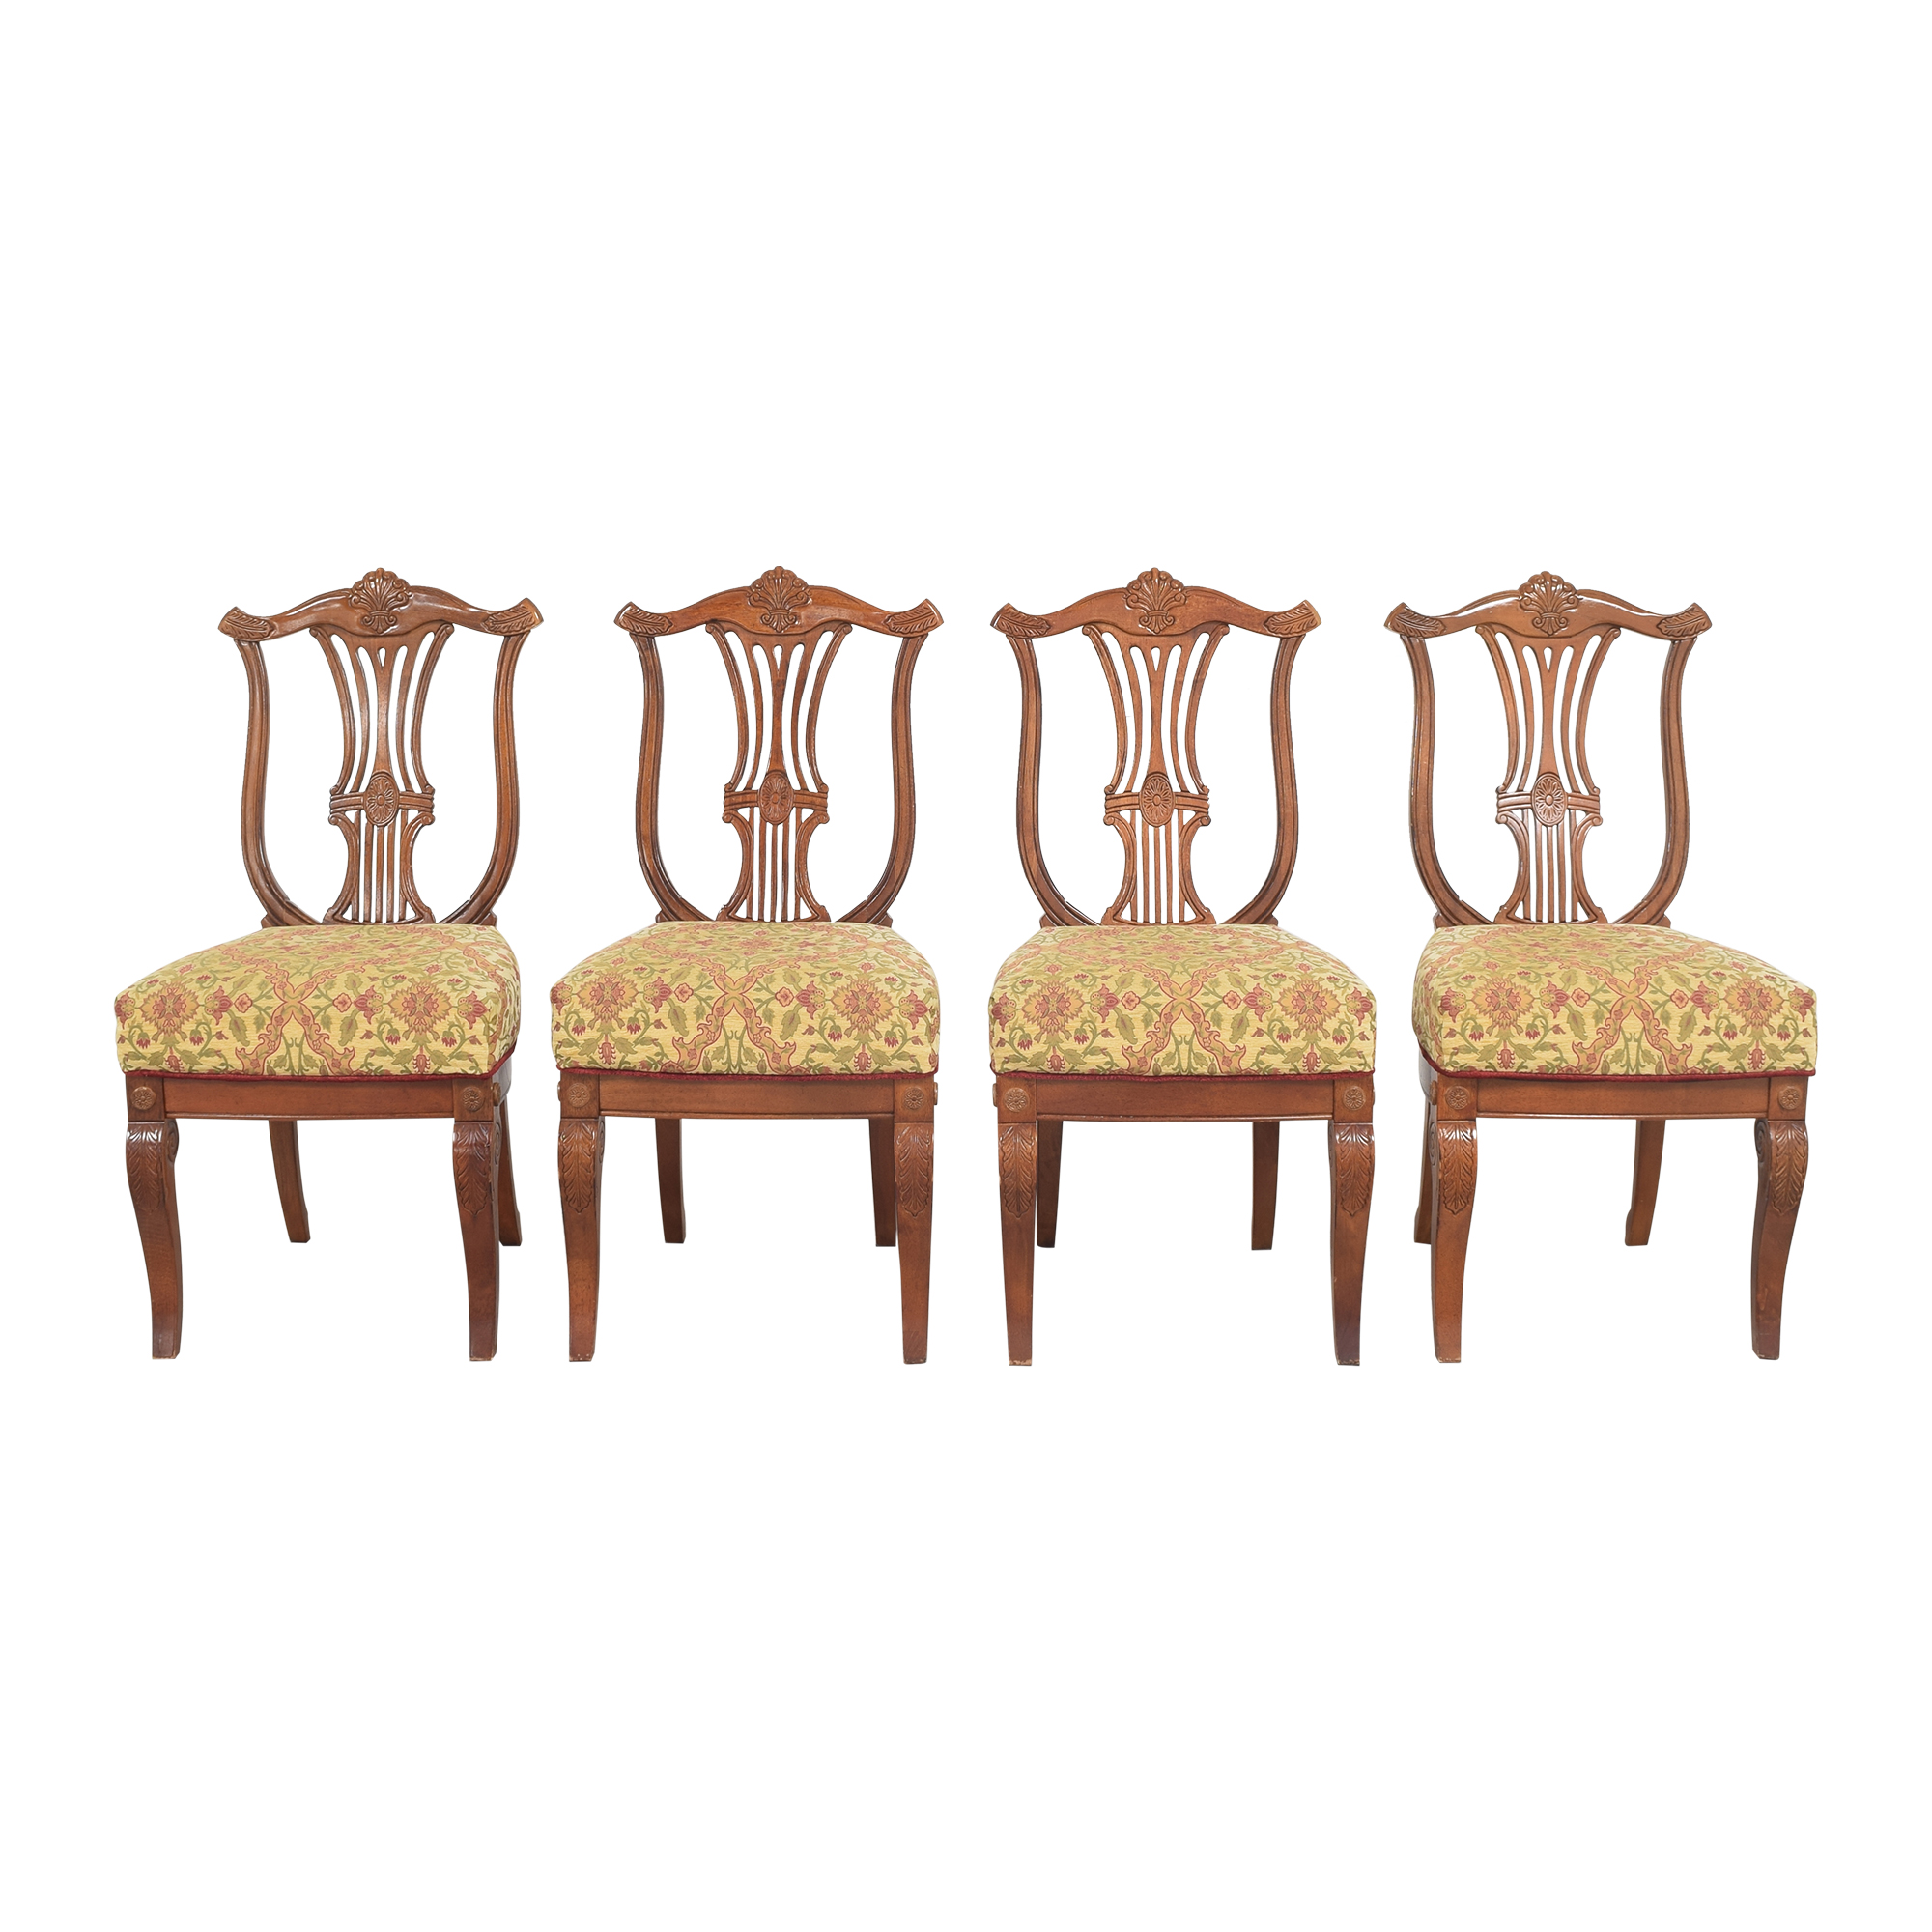 Universal Furniture Upholstered Dining Chairs sale